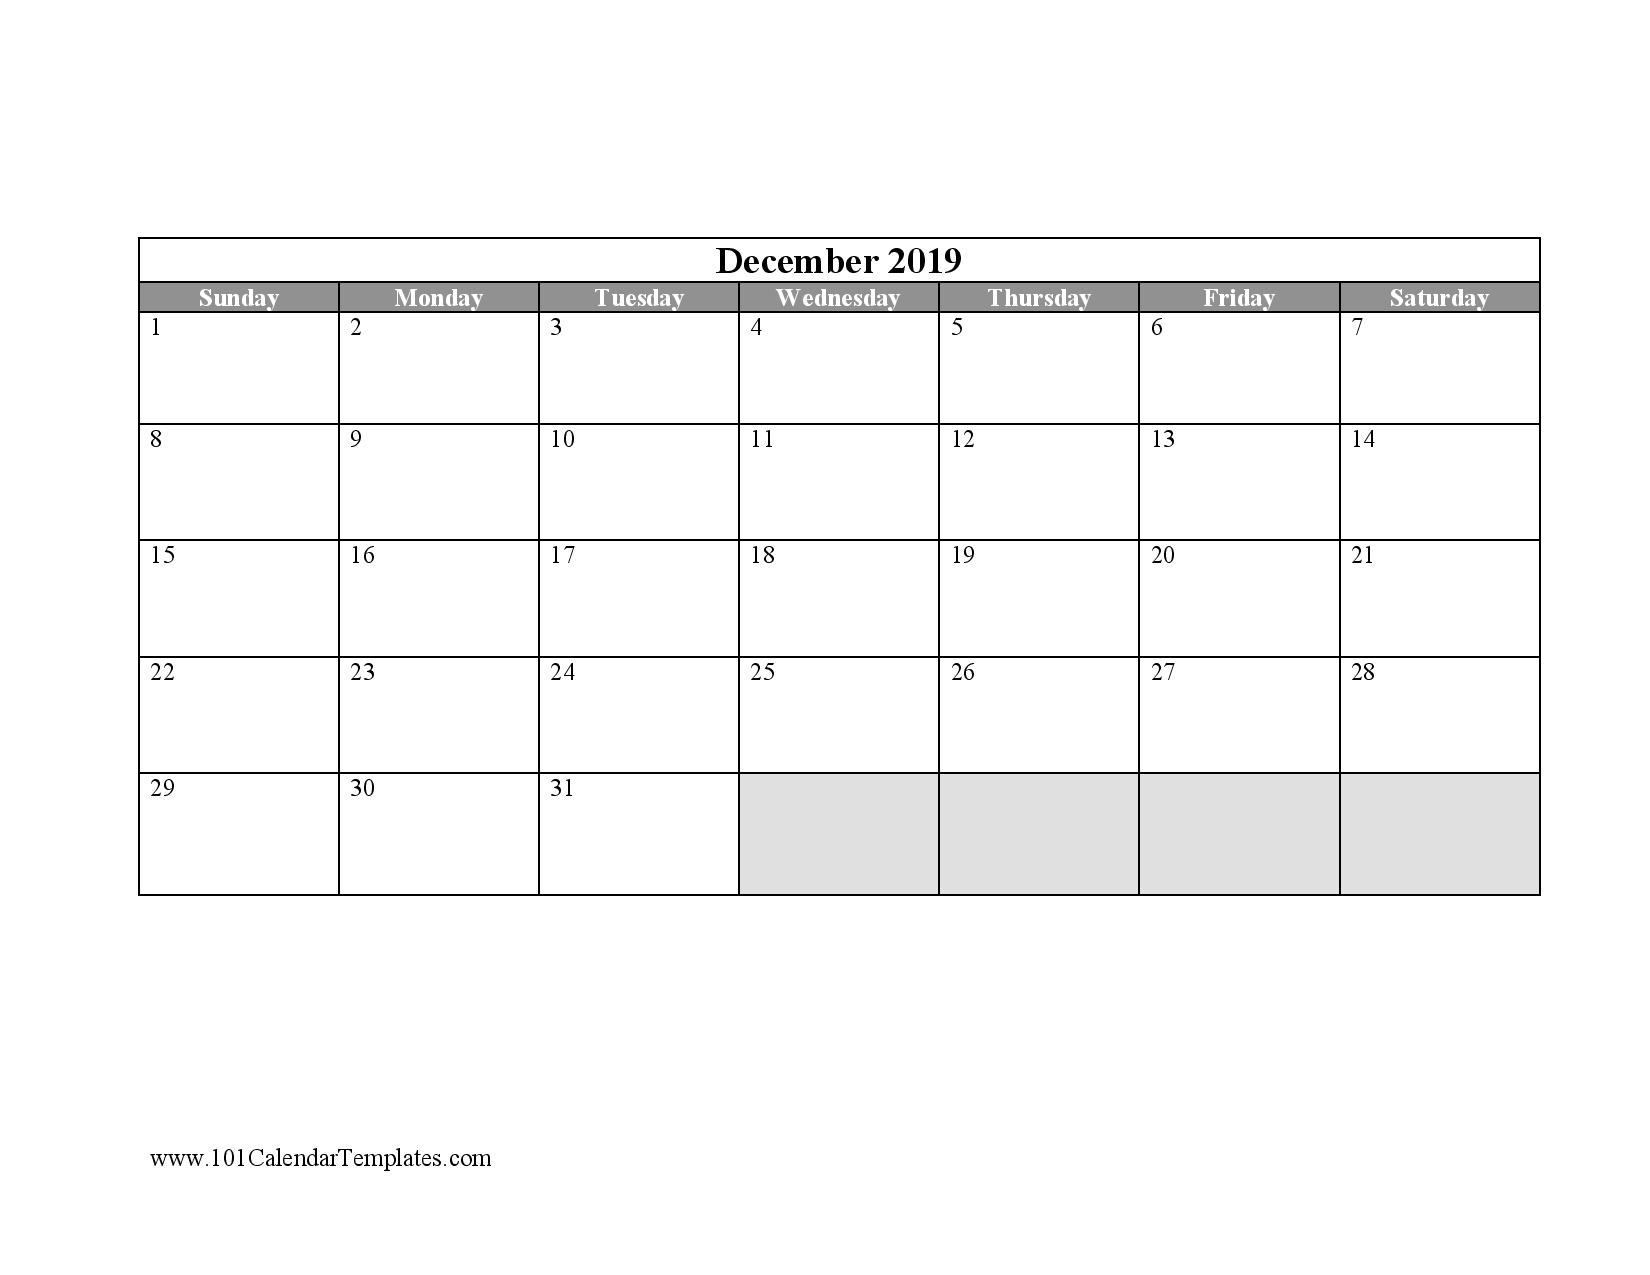 Free Blank Calendar Templates Word Excel Pdf For Any Month